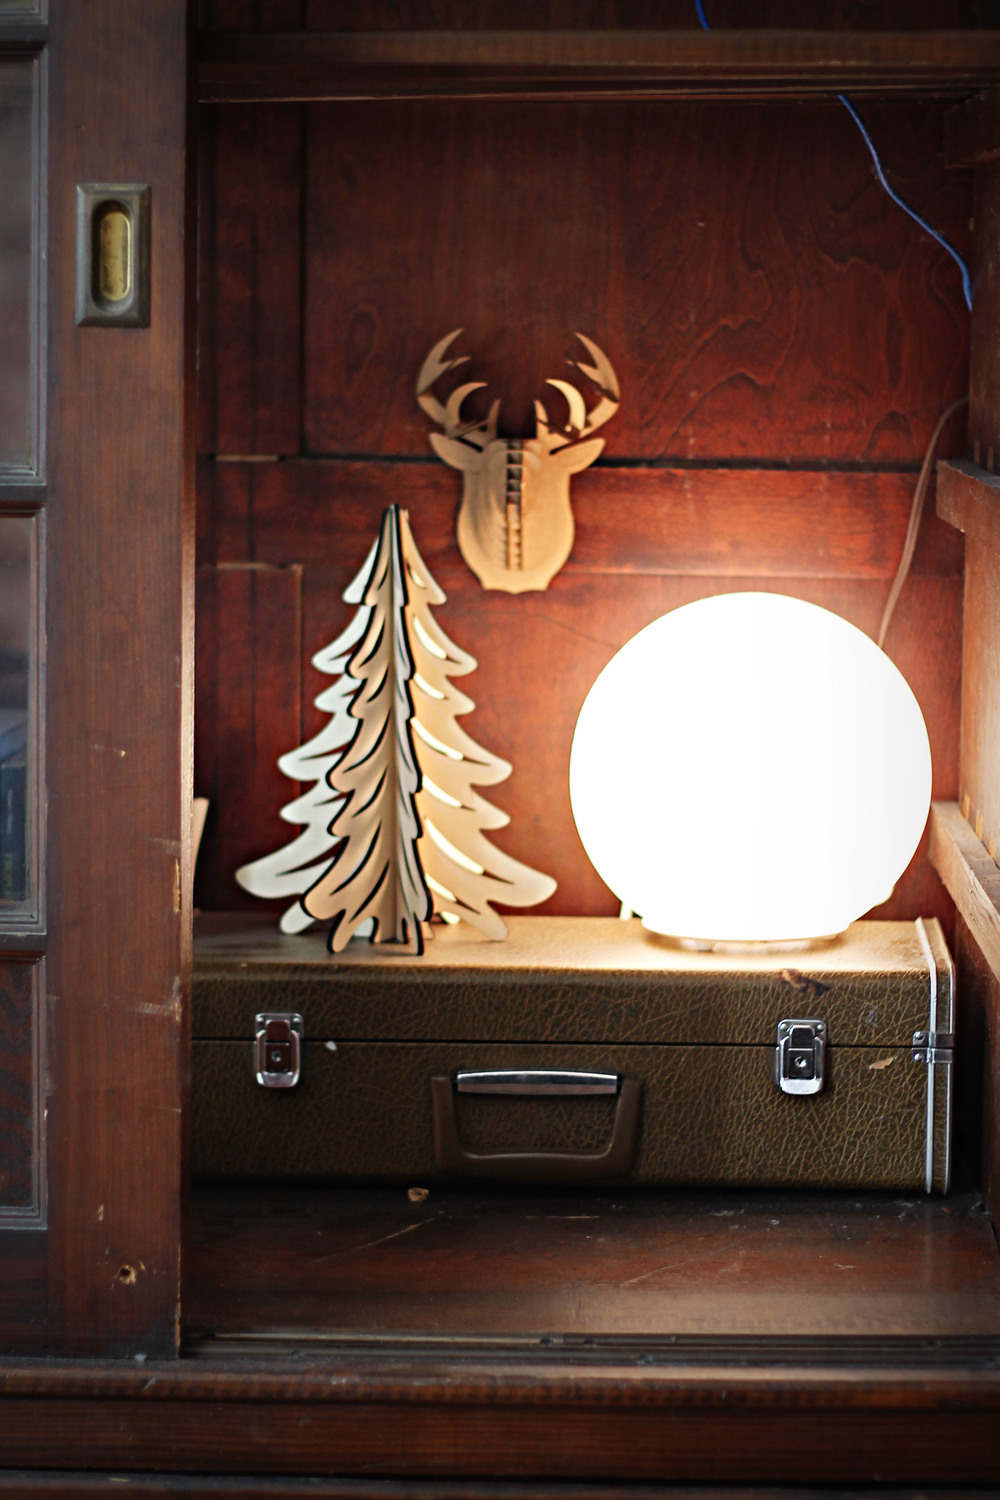 collections like these : matt bought me the lamp as a housewarming gift in my last apartment, our 'christmas tree' that stays year-round, and my granddad's old briefcase.